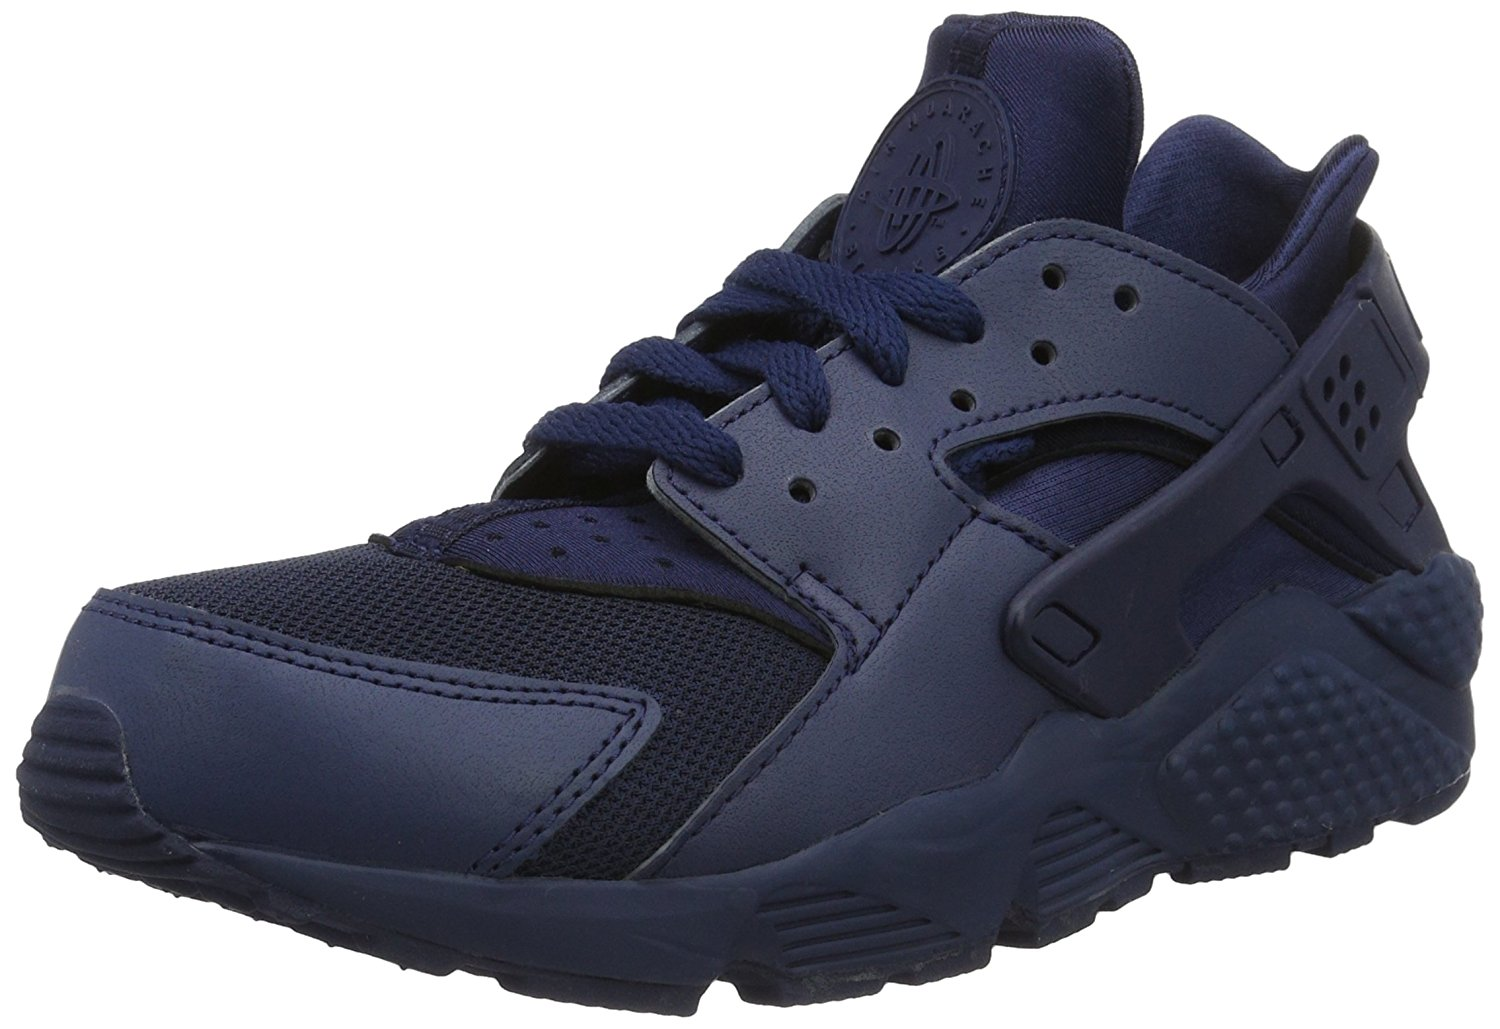 b43a4107fd12 Buy Nike Air Huarache Mens Midnight Navy 318429 440 sz 14 US in ...